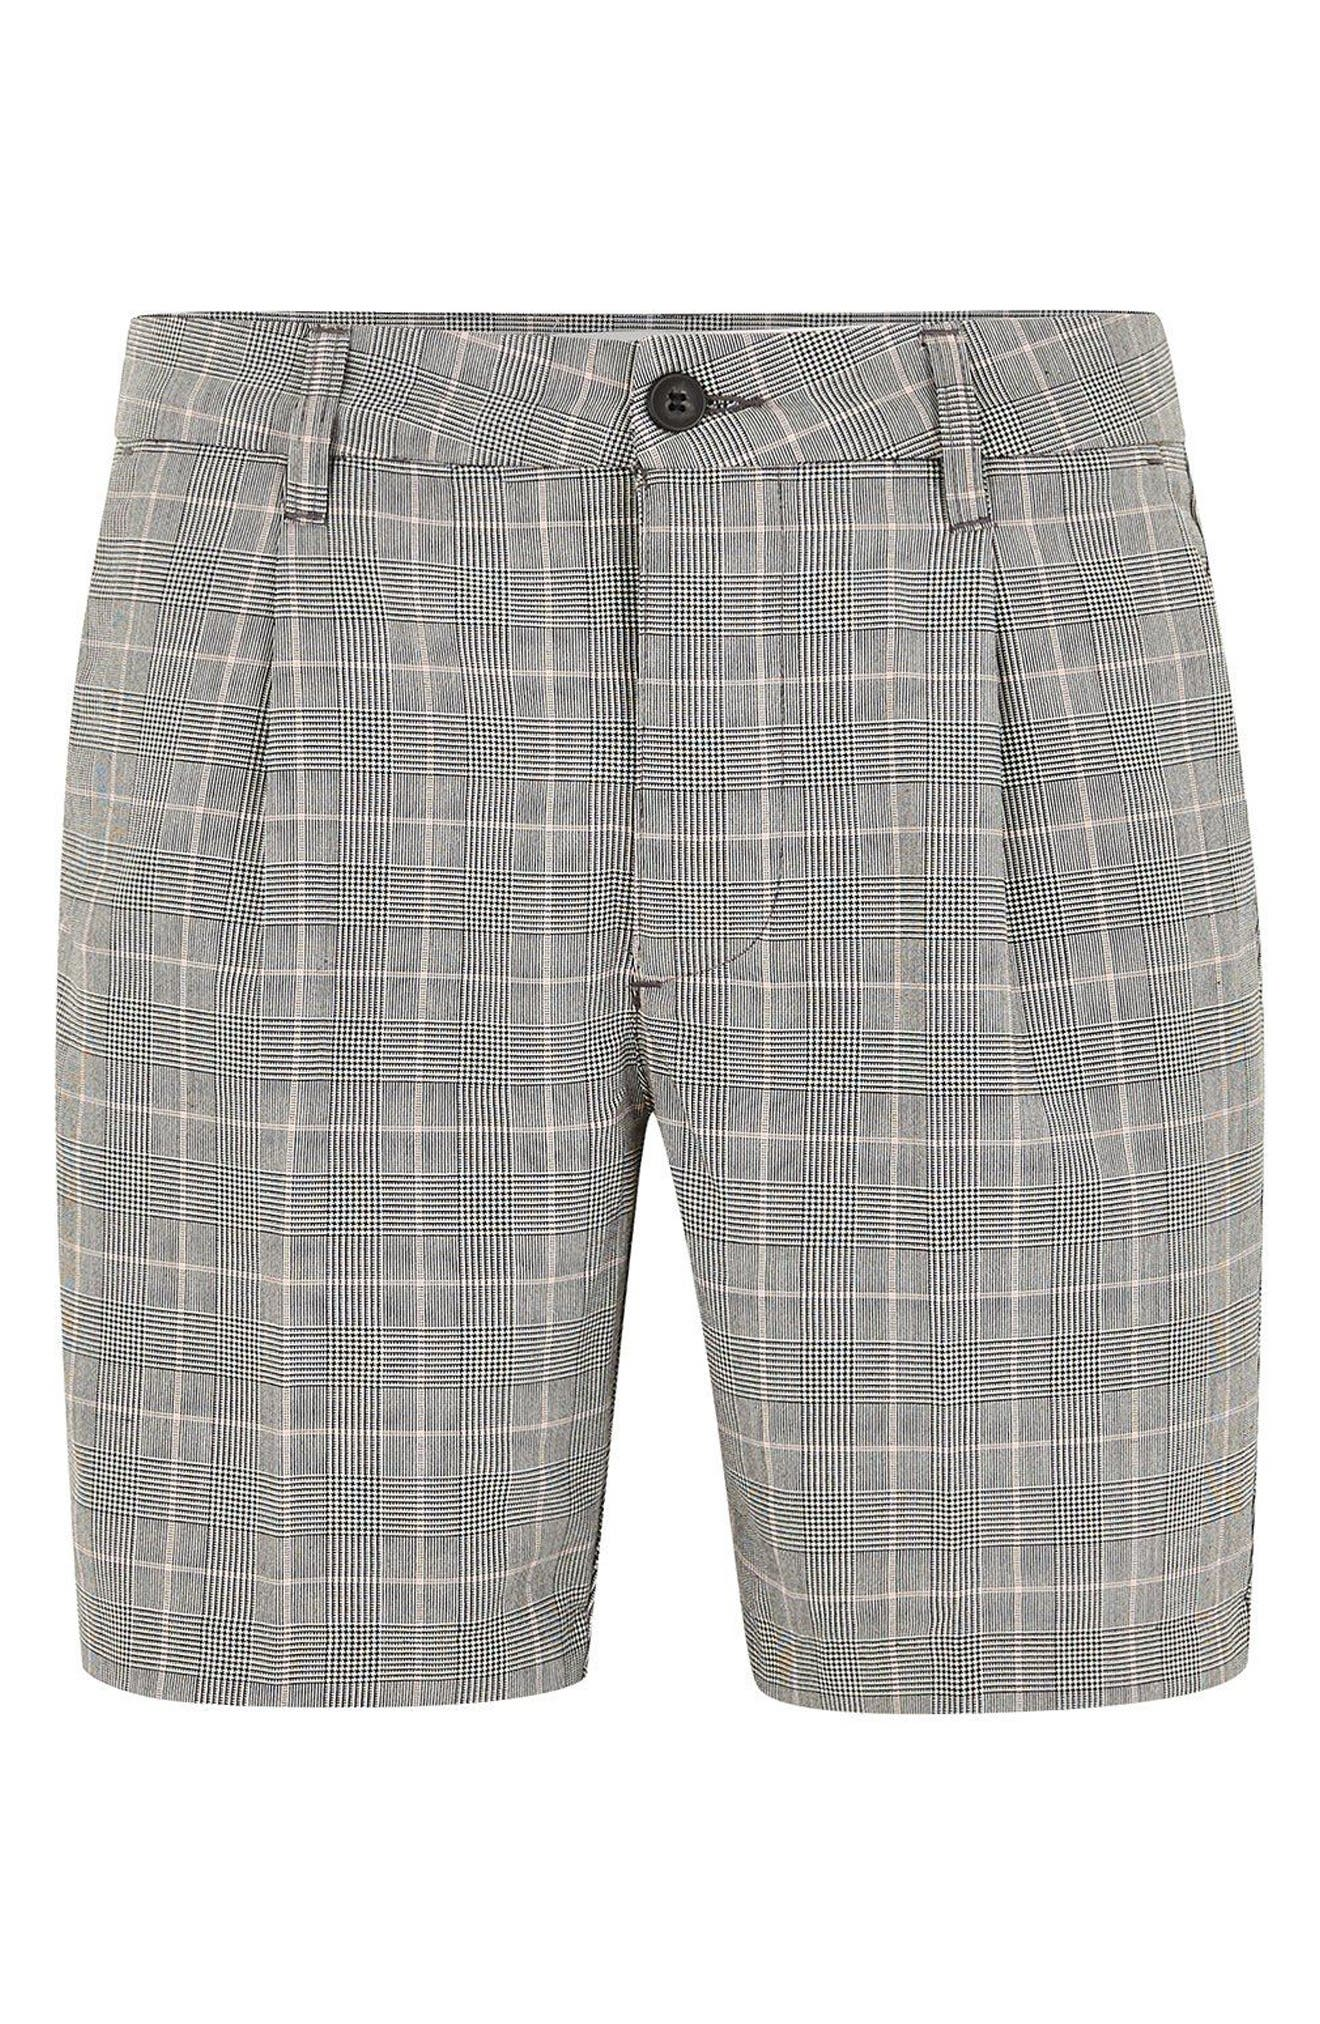 Pleated Check Shorts,                             Alternate thumbnail 4, color,                             Grey Multi